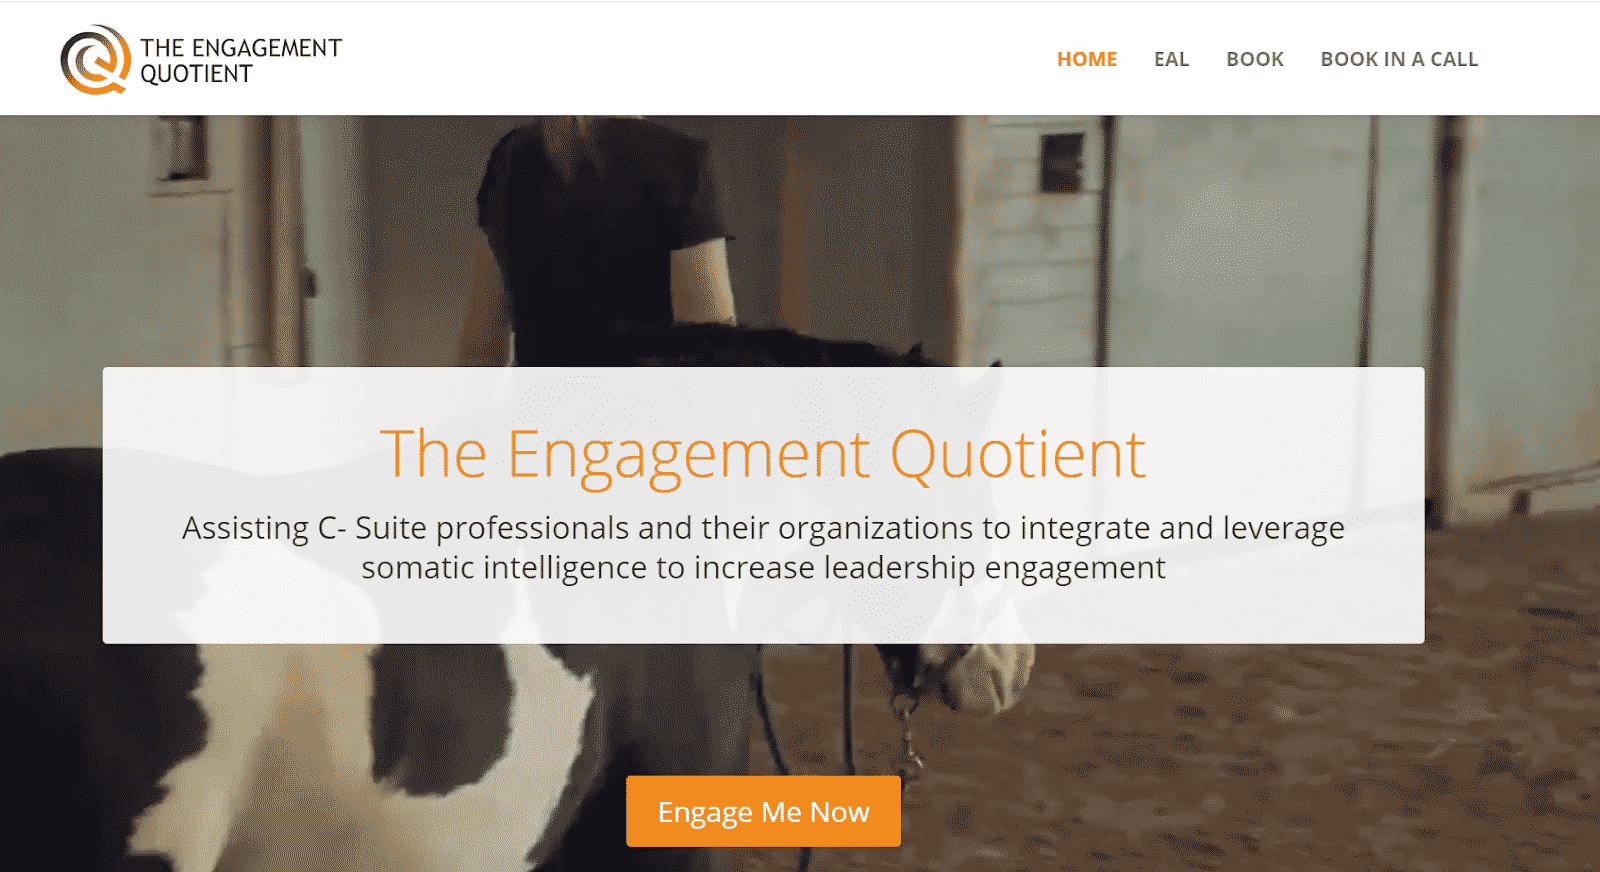 THE ENGAGEMENT QUOTIENT